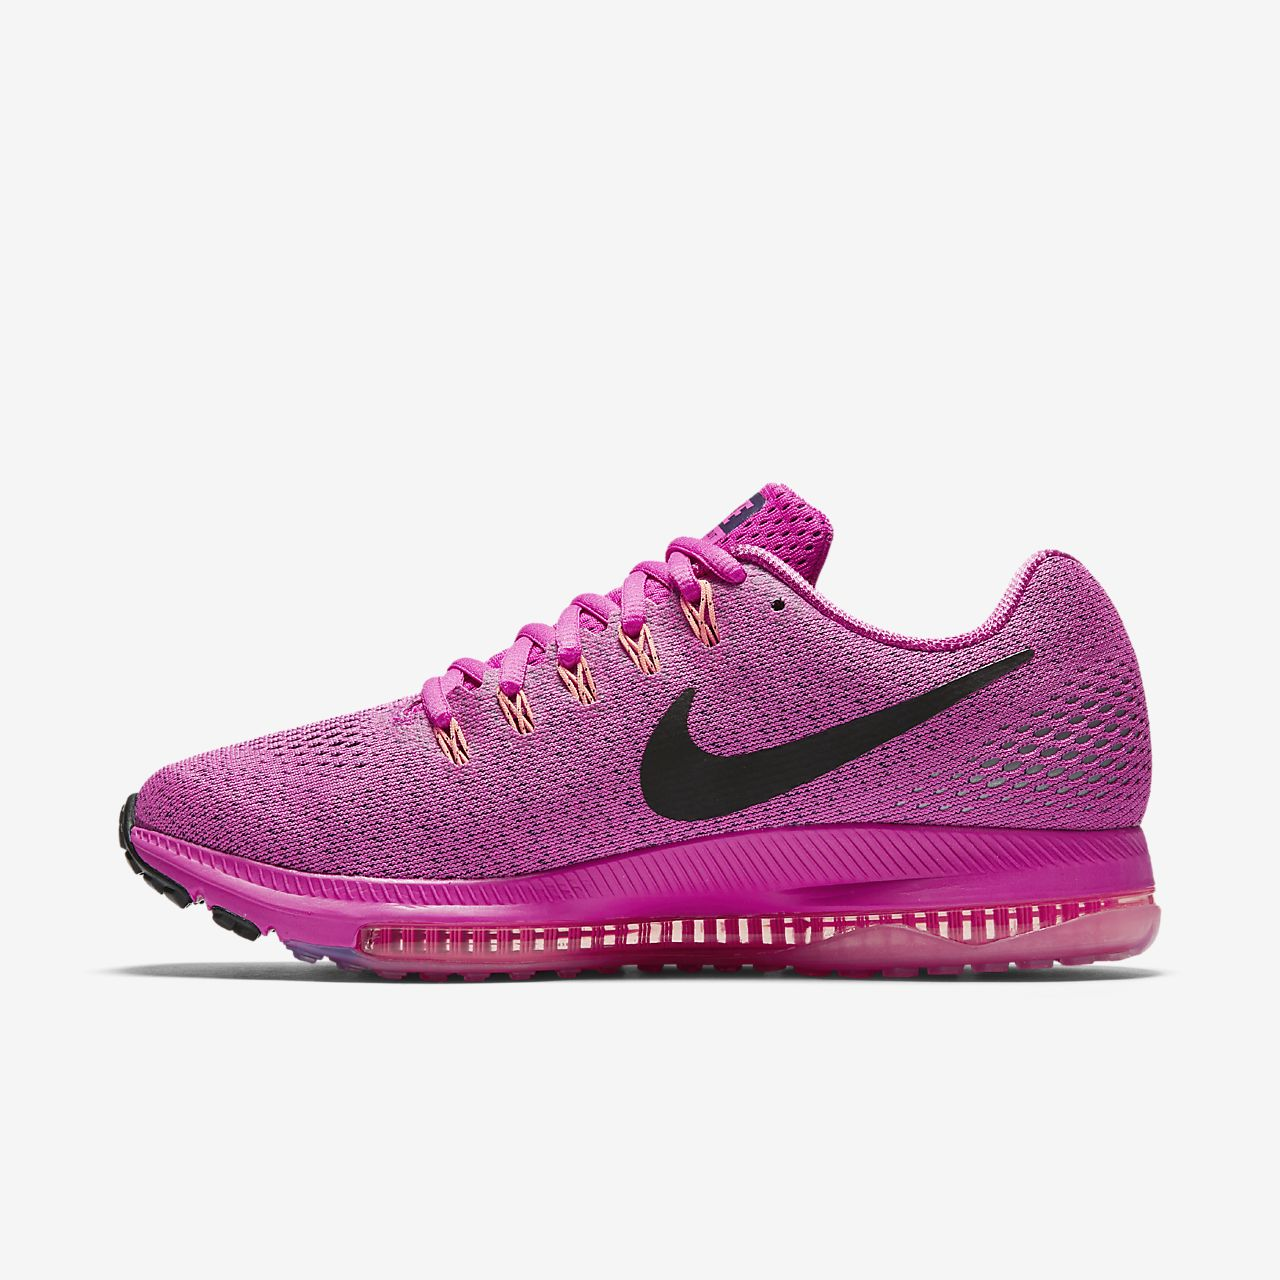 W Nike Zoom Tout Bas À 2 - Chaussures Pour Femmes / Rose Nike 4ubMtrnjUN